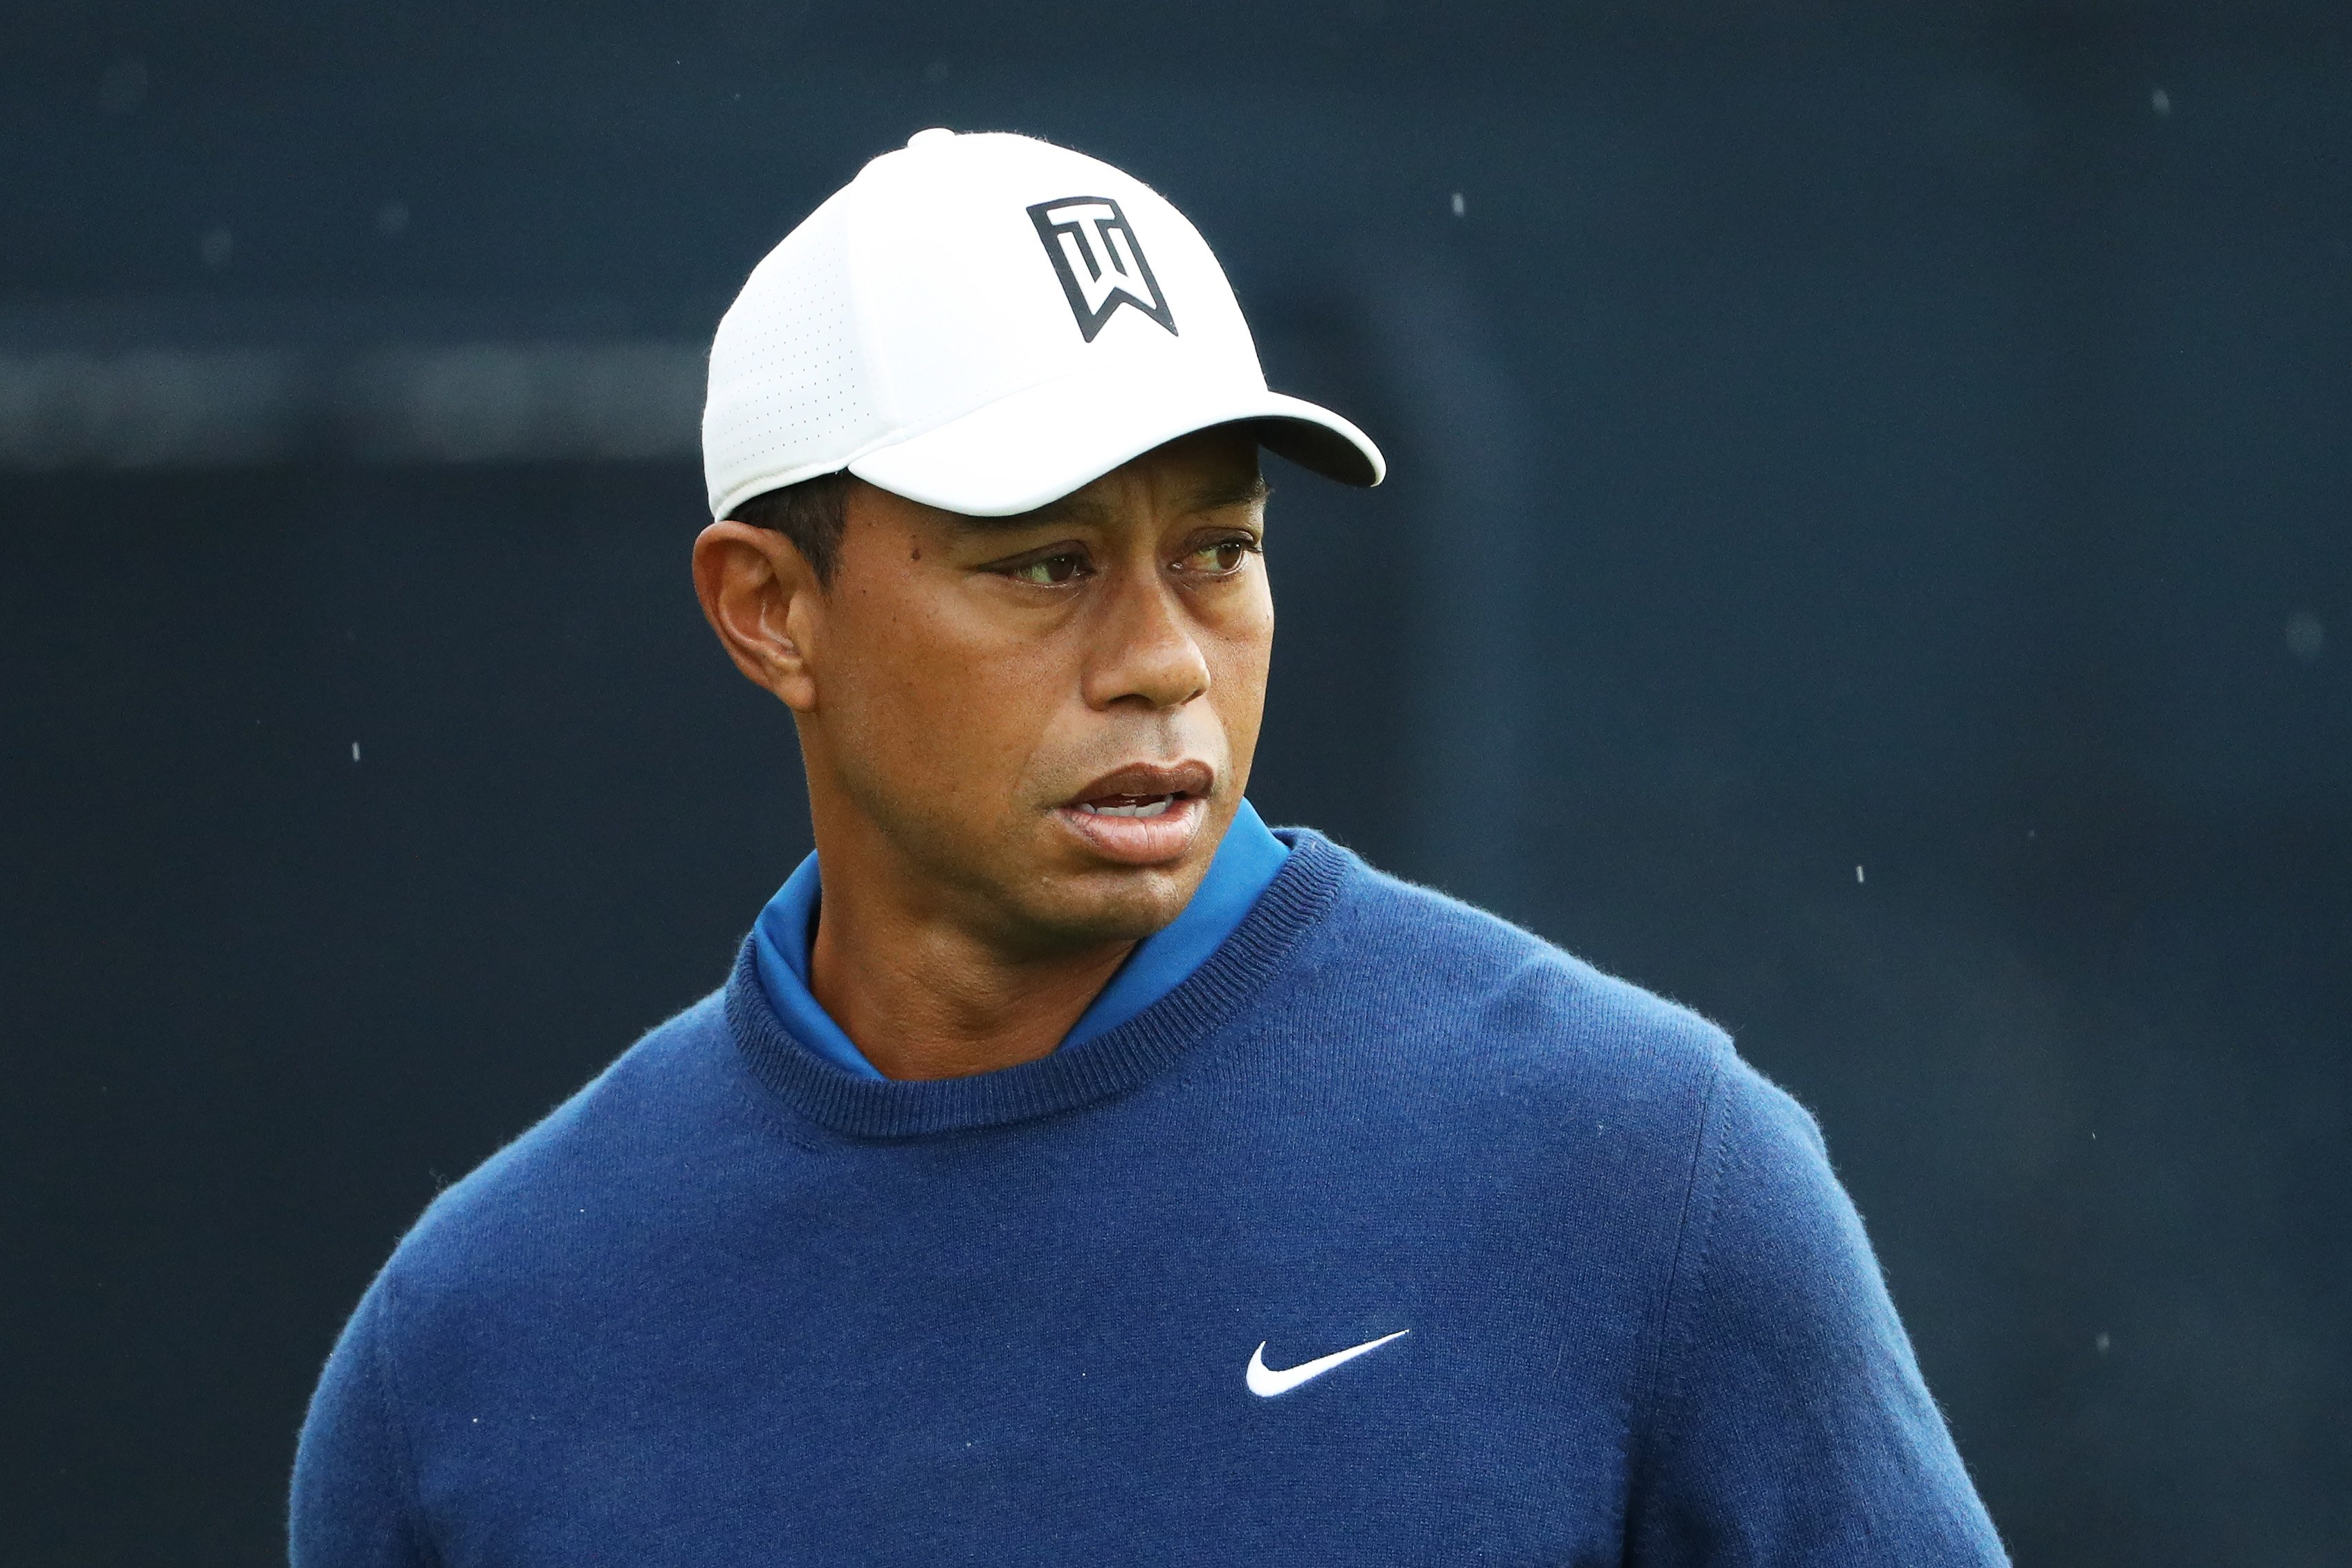 Image Credits: Getty Images / Patrick Smith | Tiger Woods of the United States warms up on the practice range during the first round of the 2019 PGA Championship at the Bethpage Black course on May 16, 2019 in Farmingdale, New York.